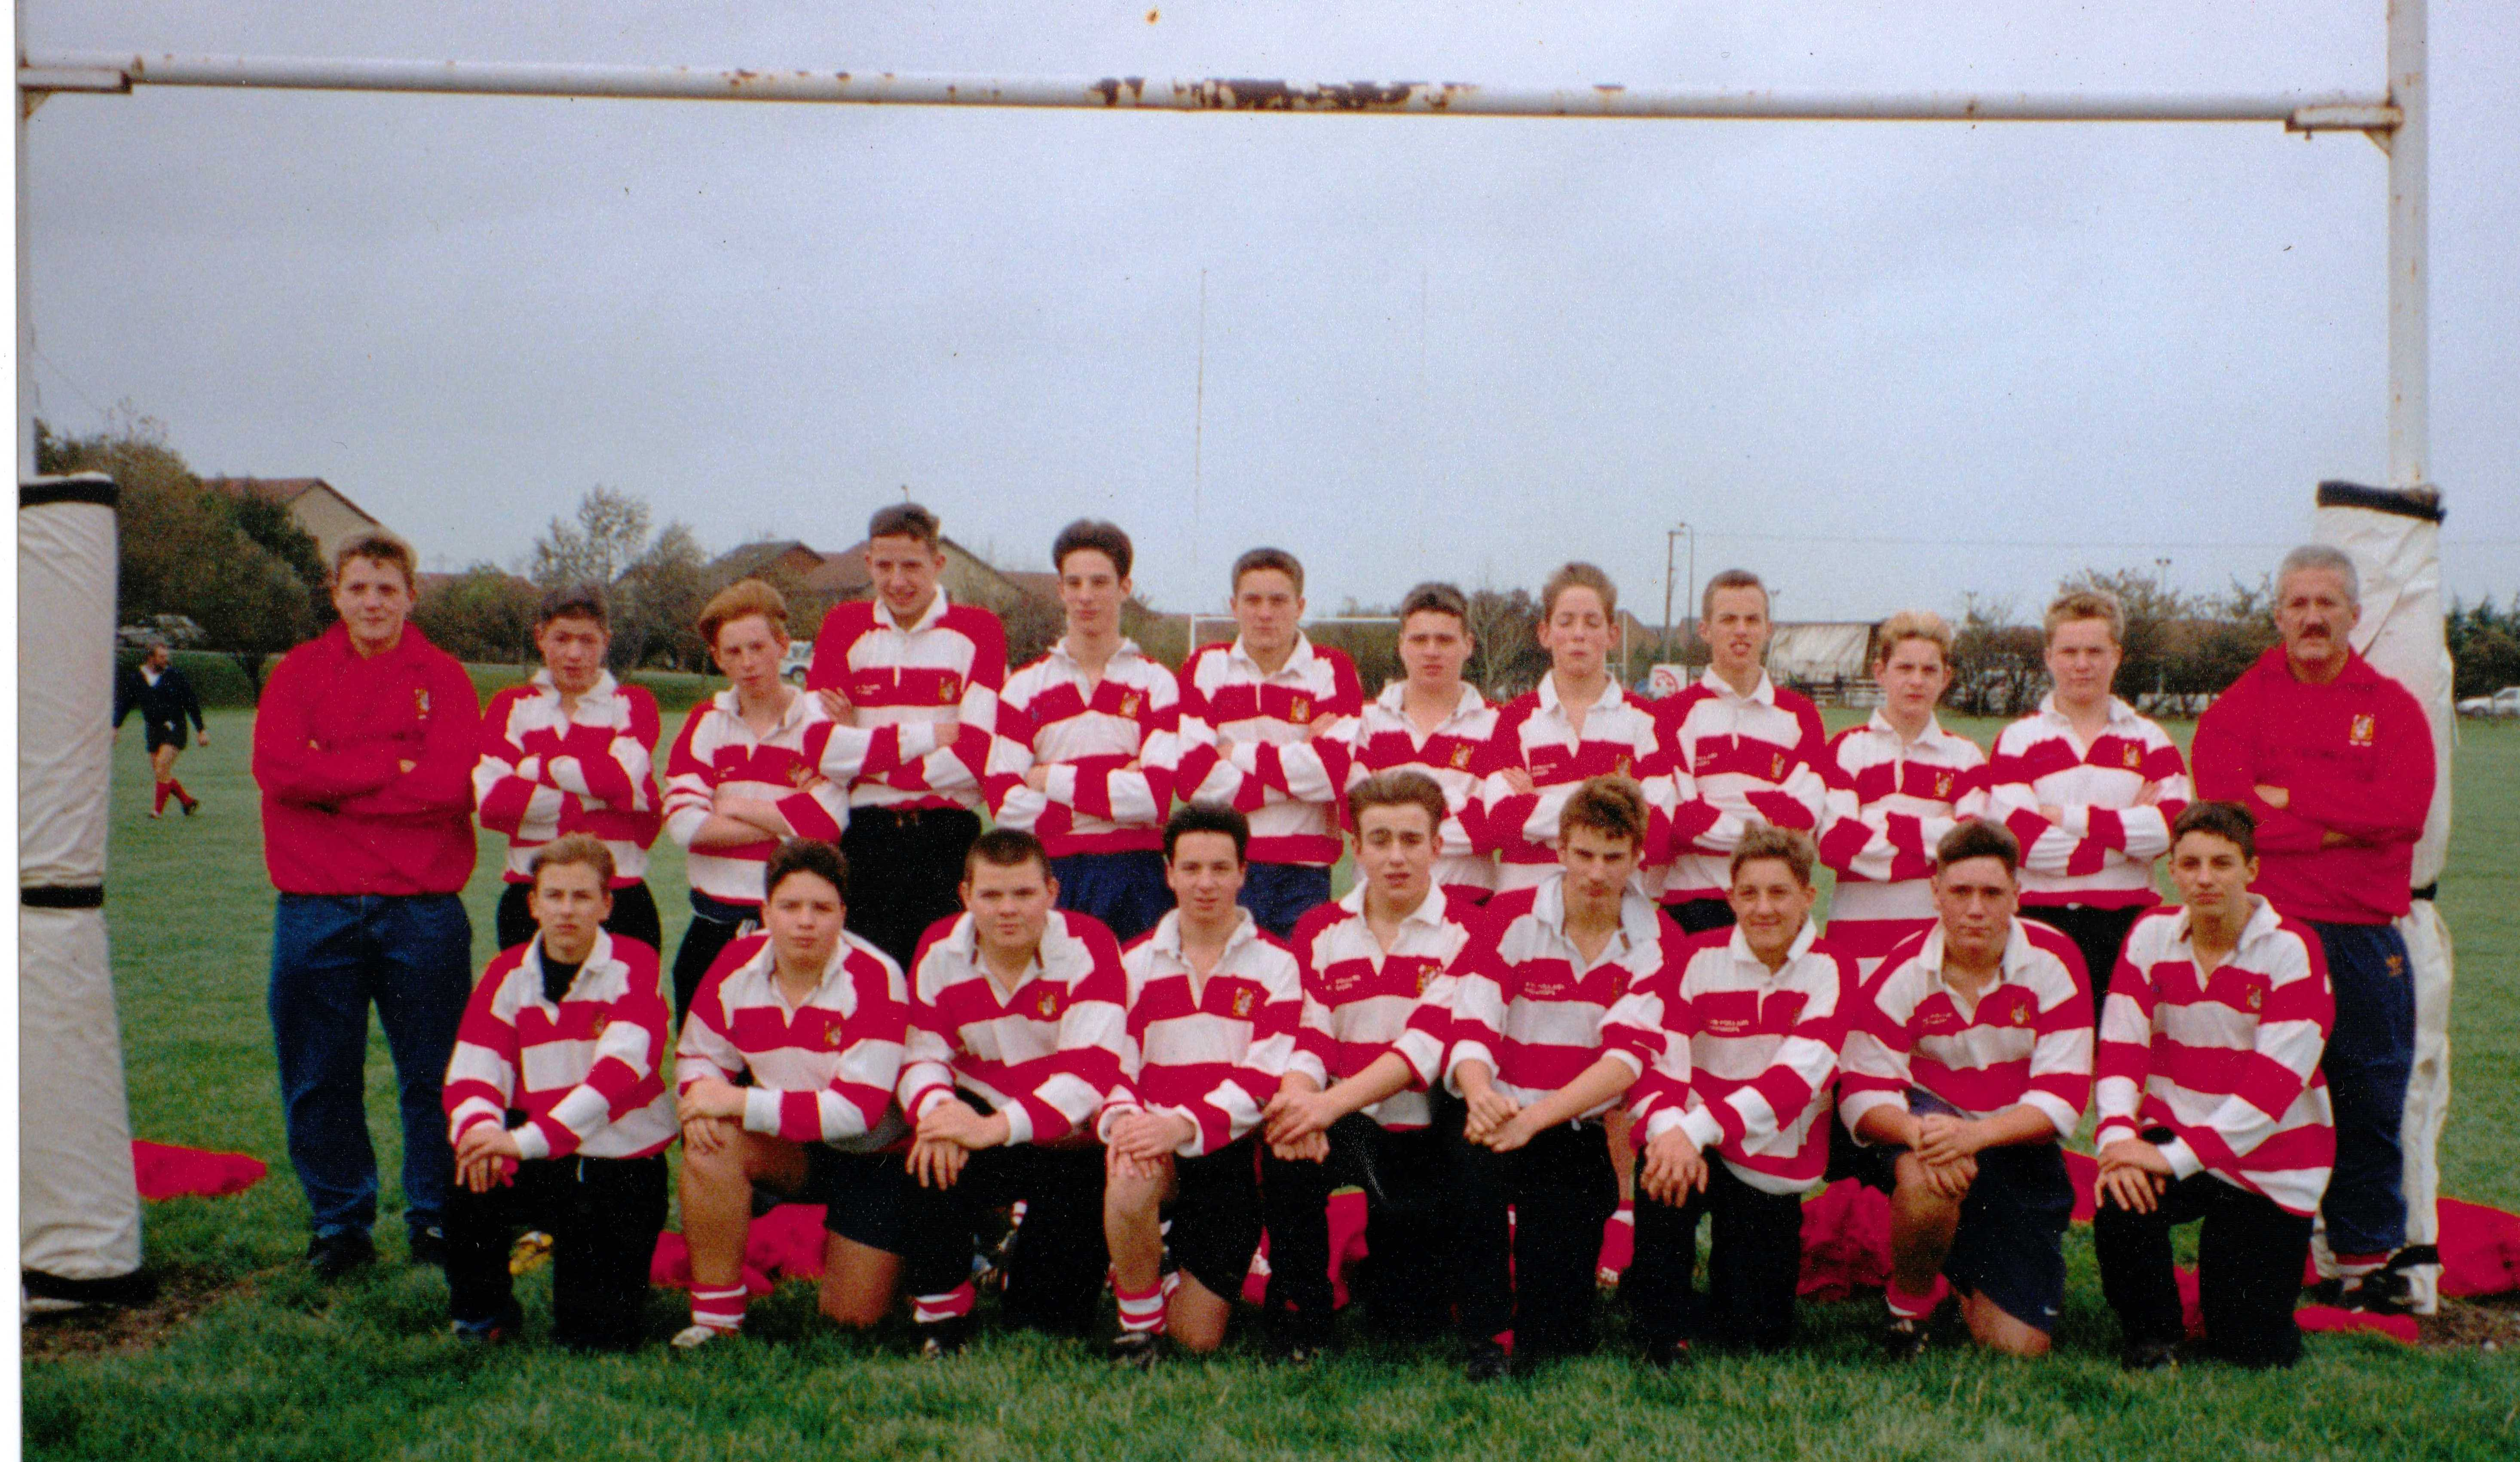 Painswick RFC - 1998 U15s Tour